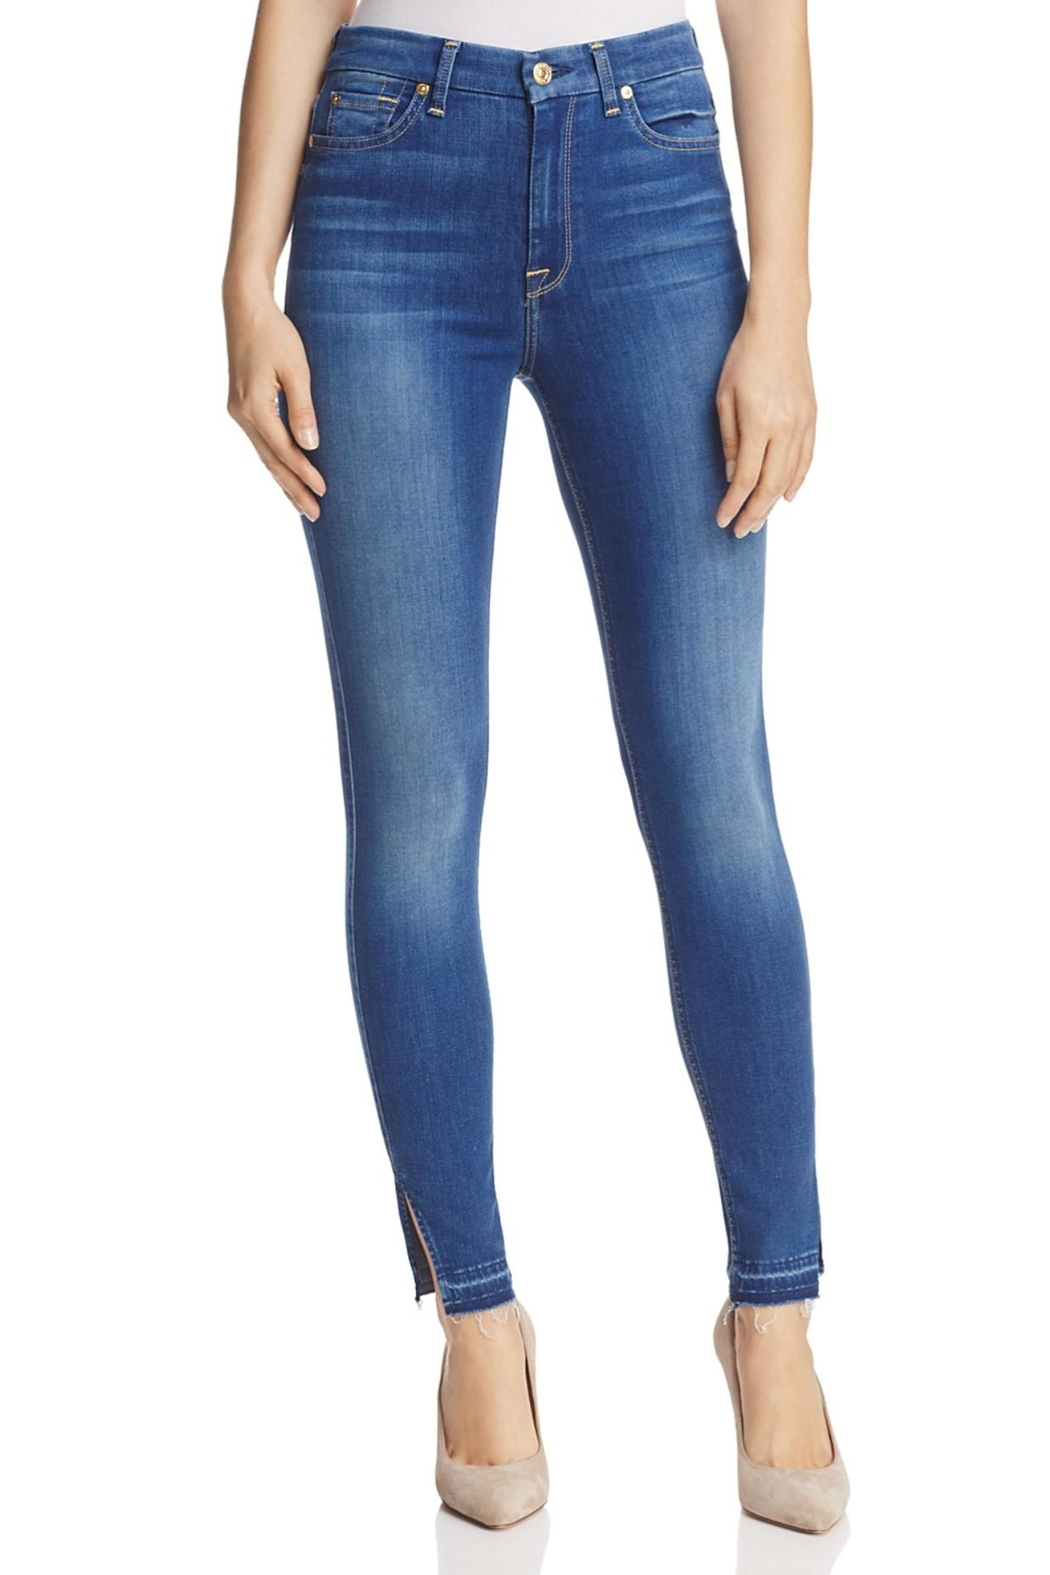 7 For all Mankind B(air) High-Rise Skinny - Main Image